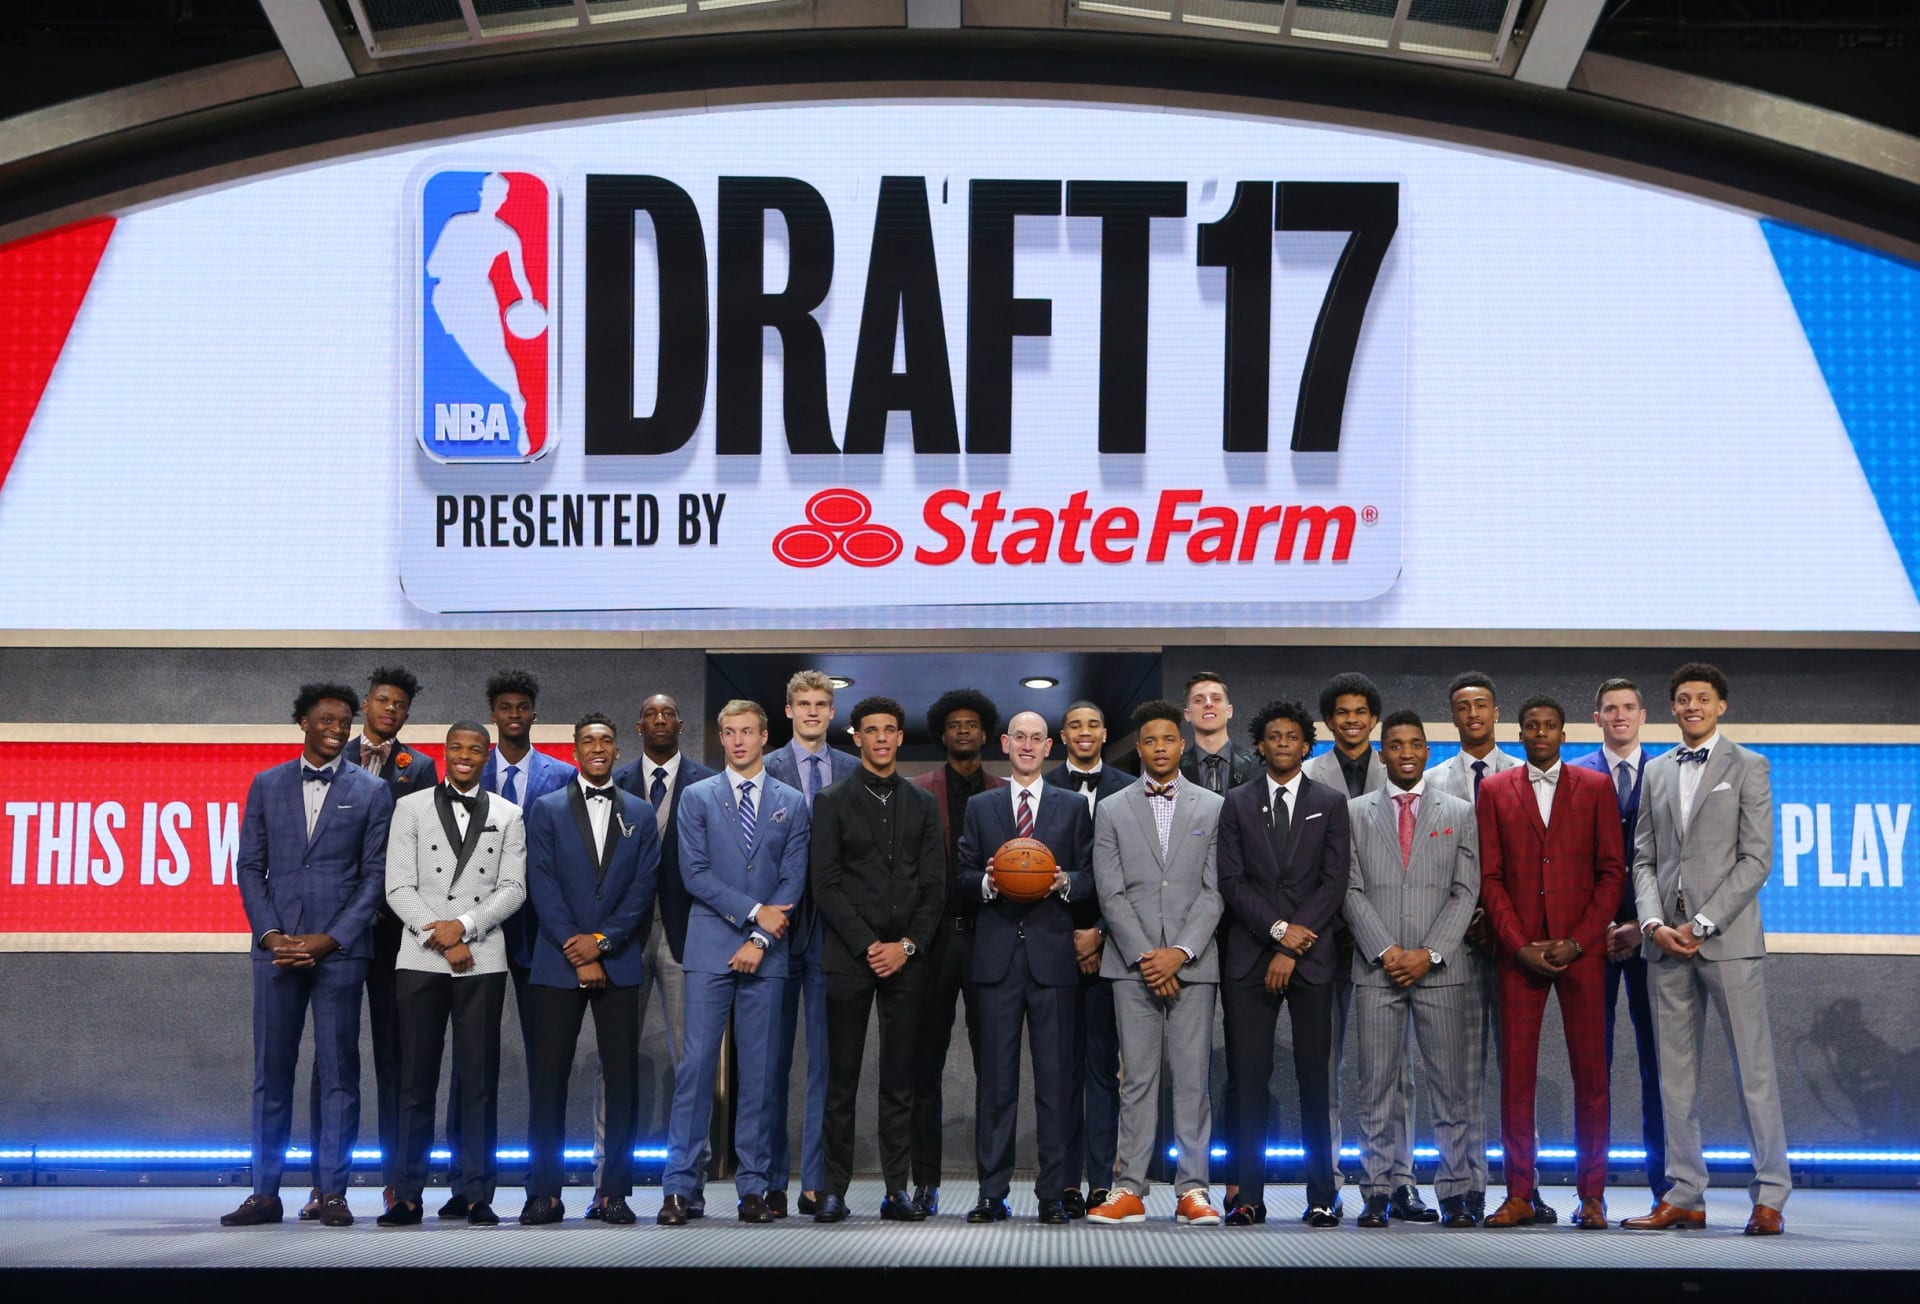 f133dffcae0 We Re-Drafted the 2017 NBA Draft and Lonzo Ball Is Actually a Knick ...